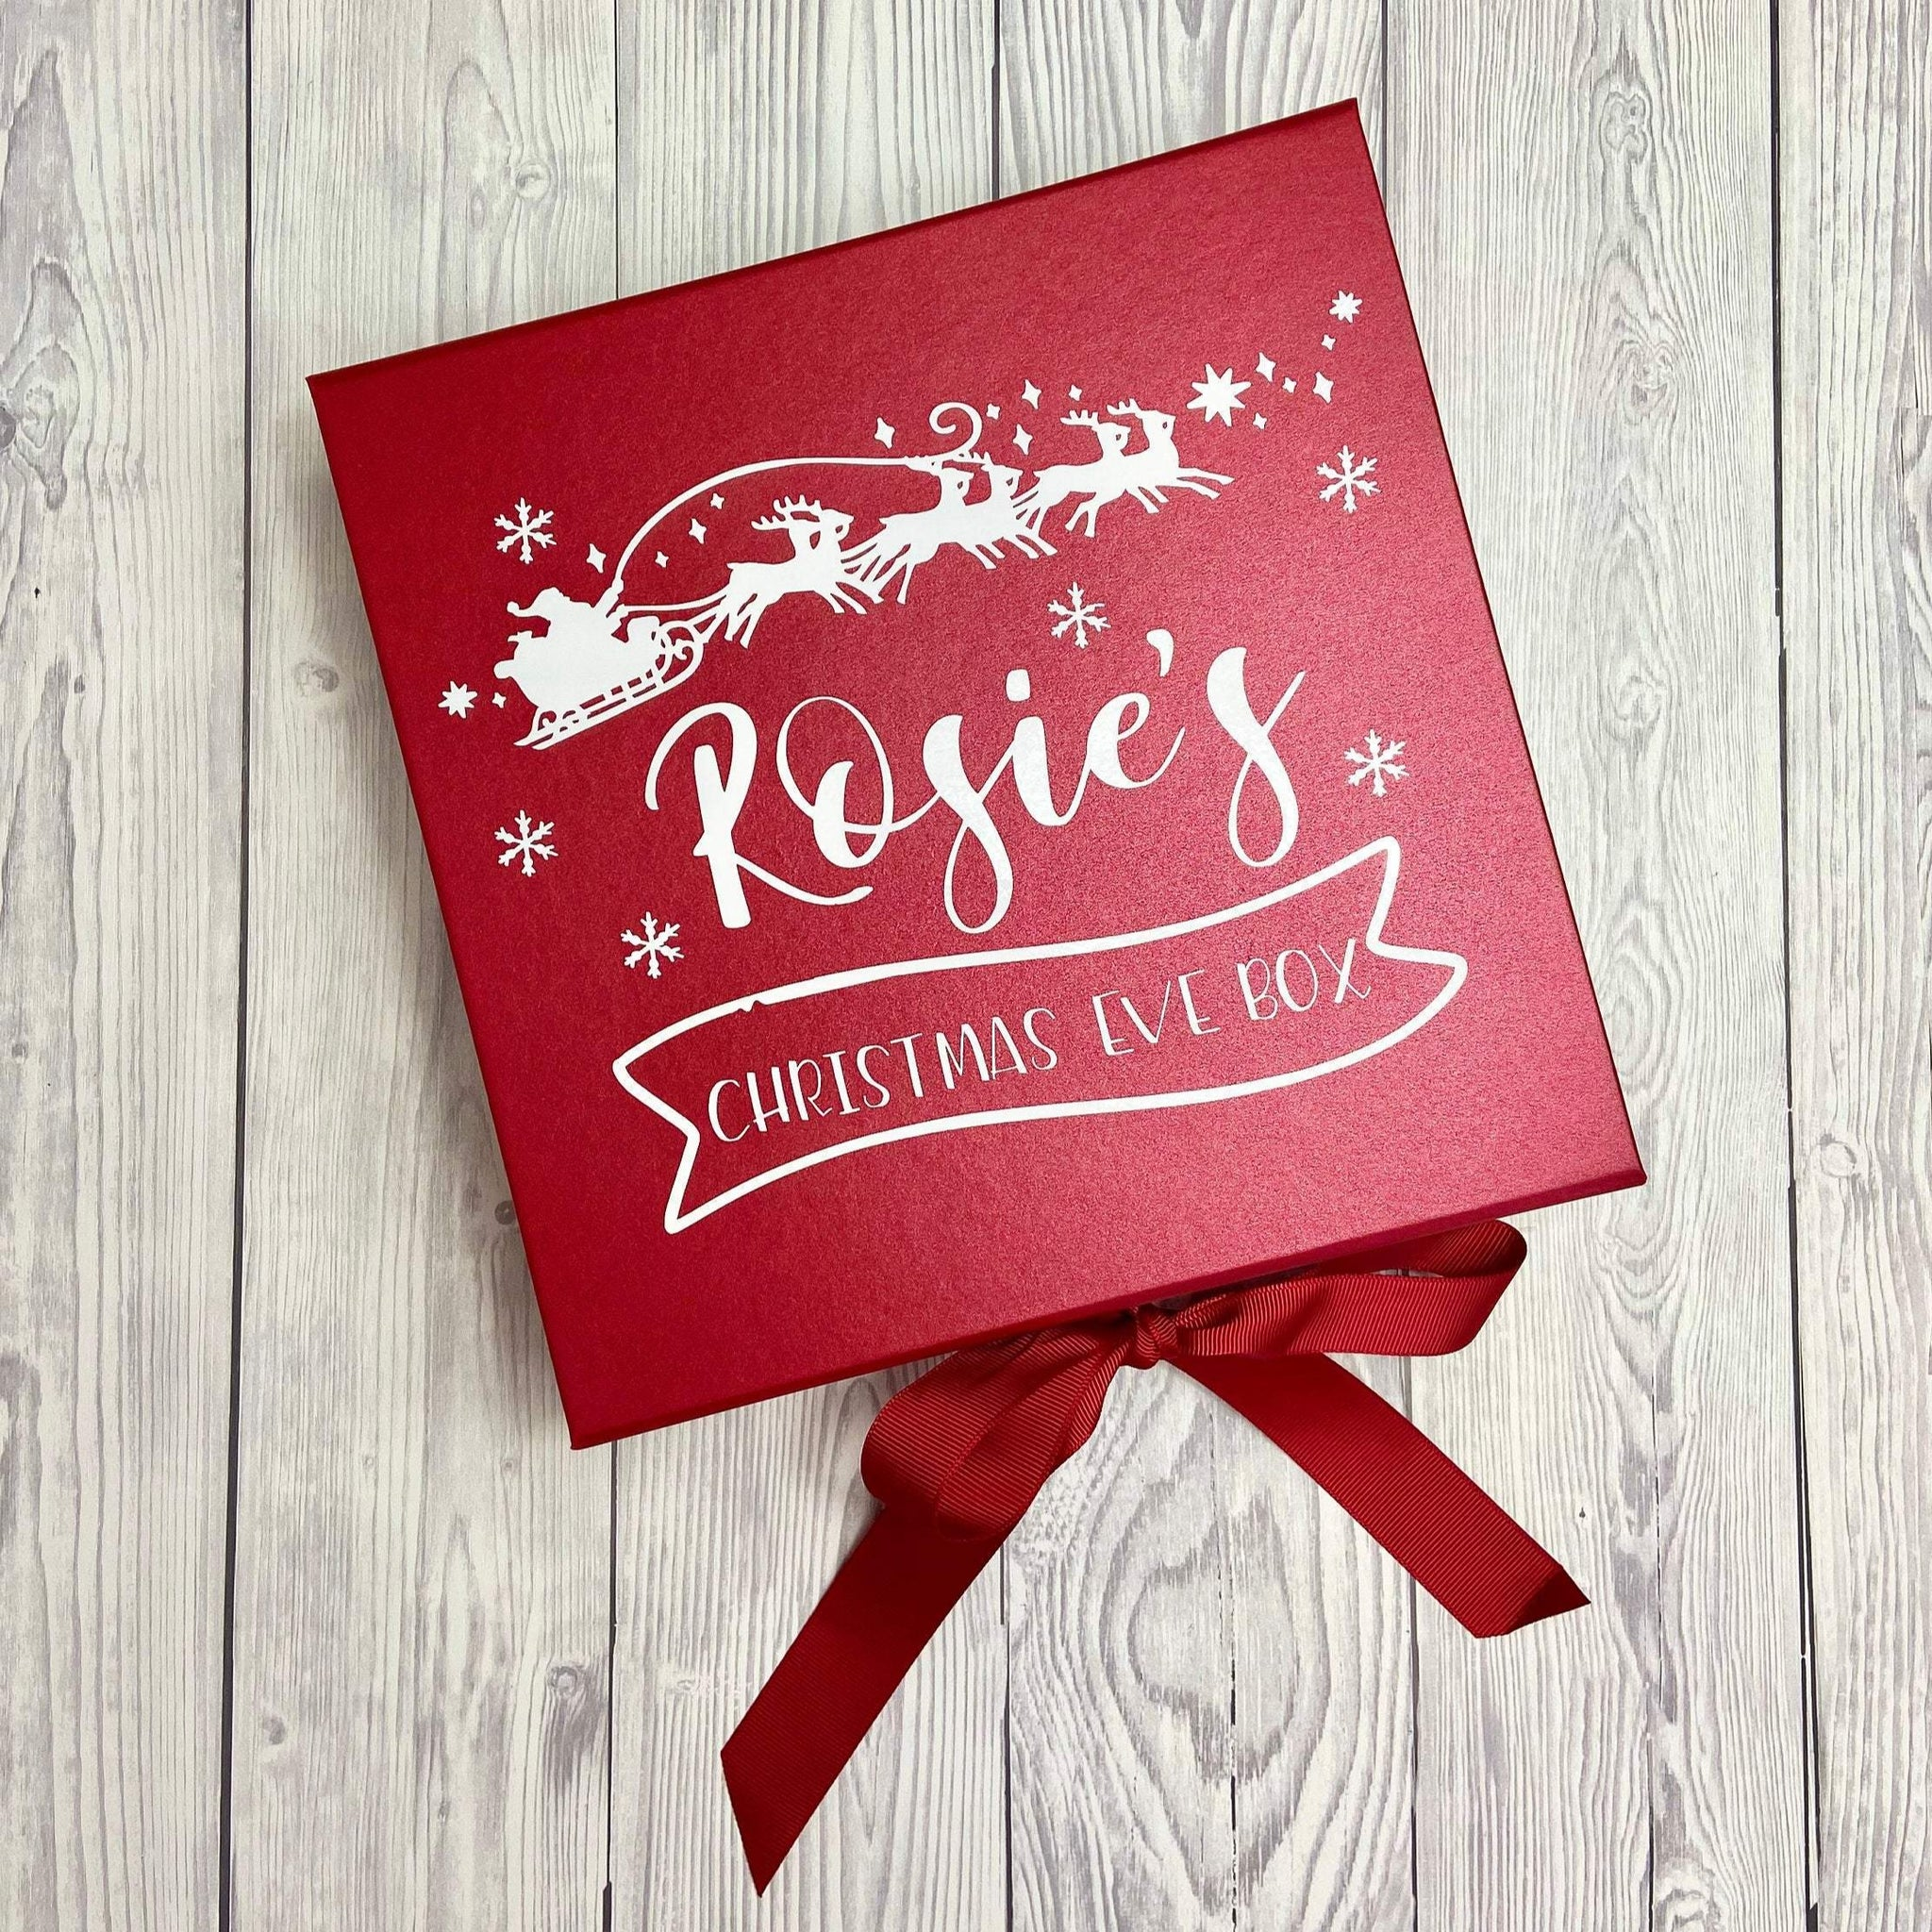 Personalised Santa's Sleigh Christmas Eve Box